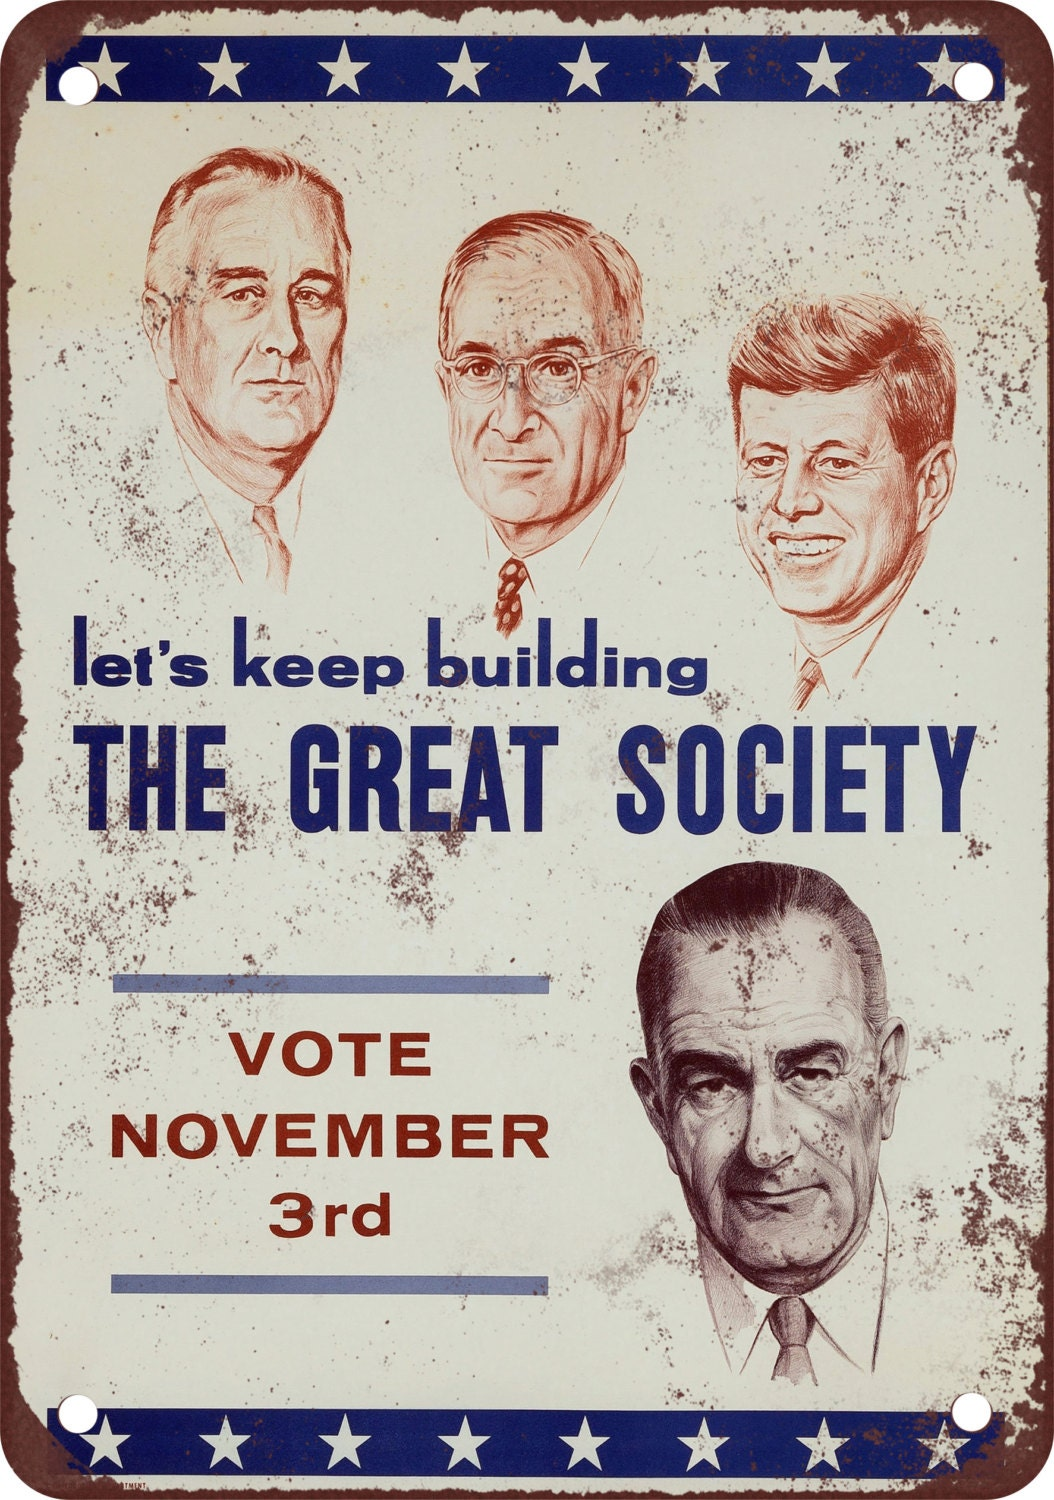 lyndon johnson and the great society Read an excerpt from randall b woods' new book, 'prisoners of hope: lyndon b johnson, the great society, and the limits of liberalism' how the great society reforms of the 1960s were different.